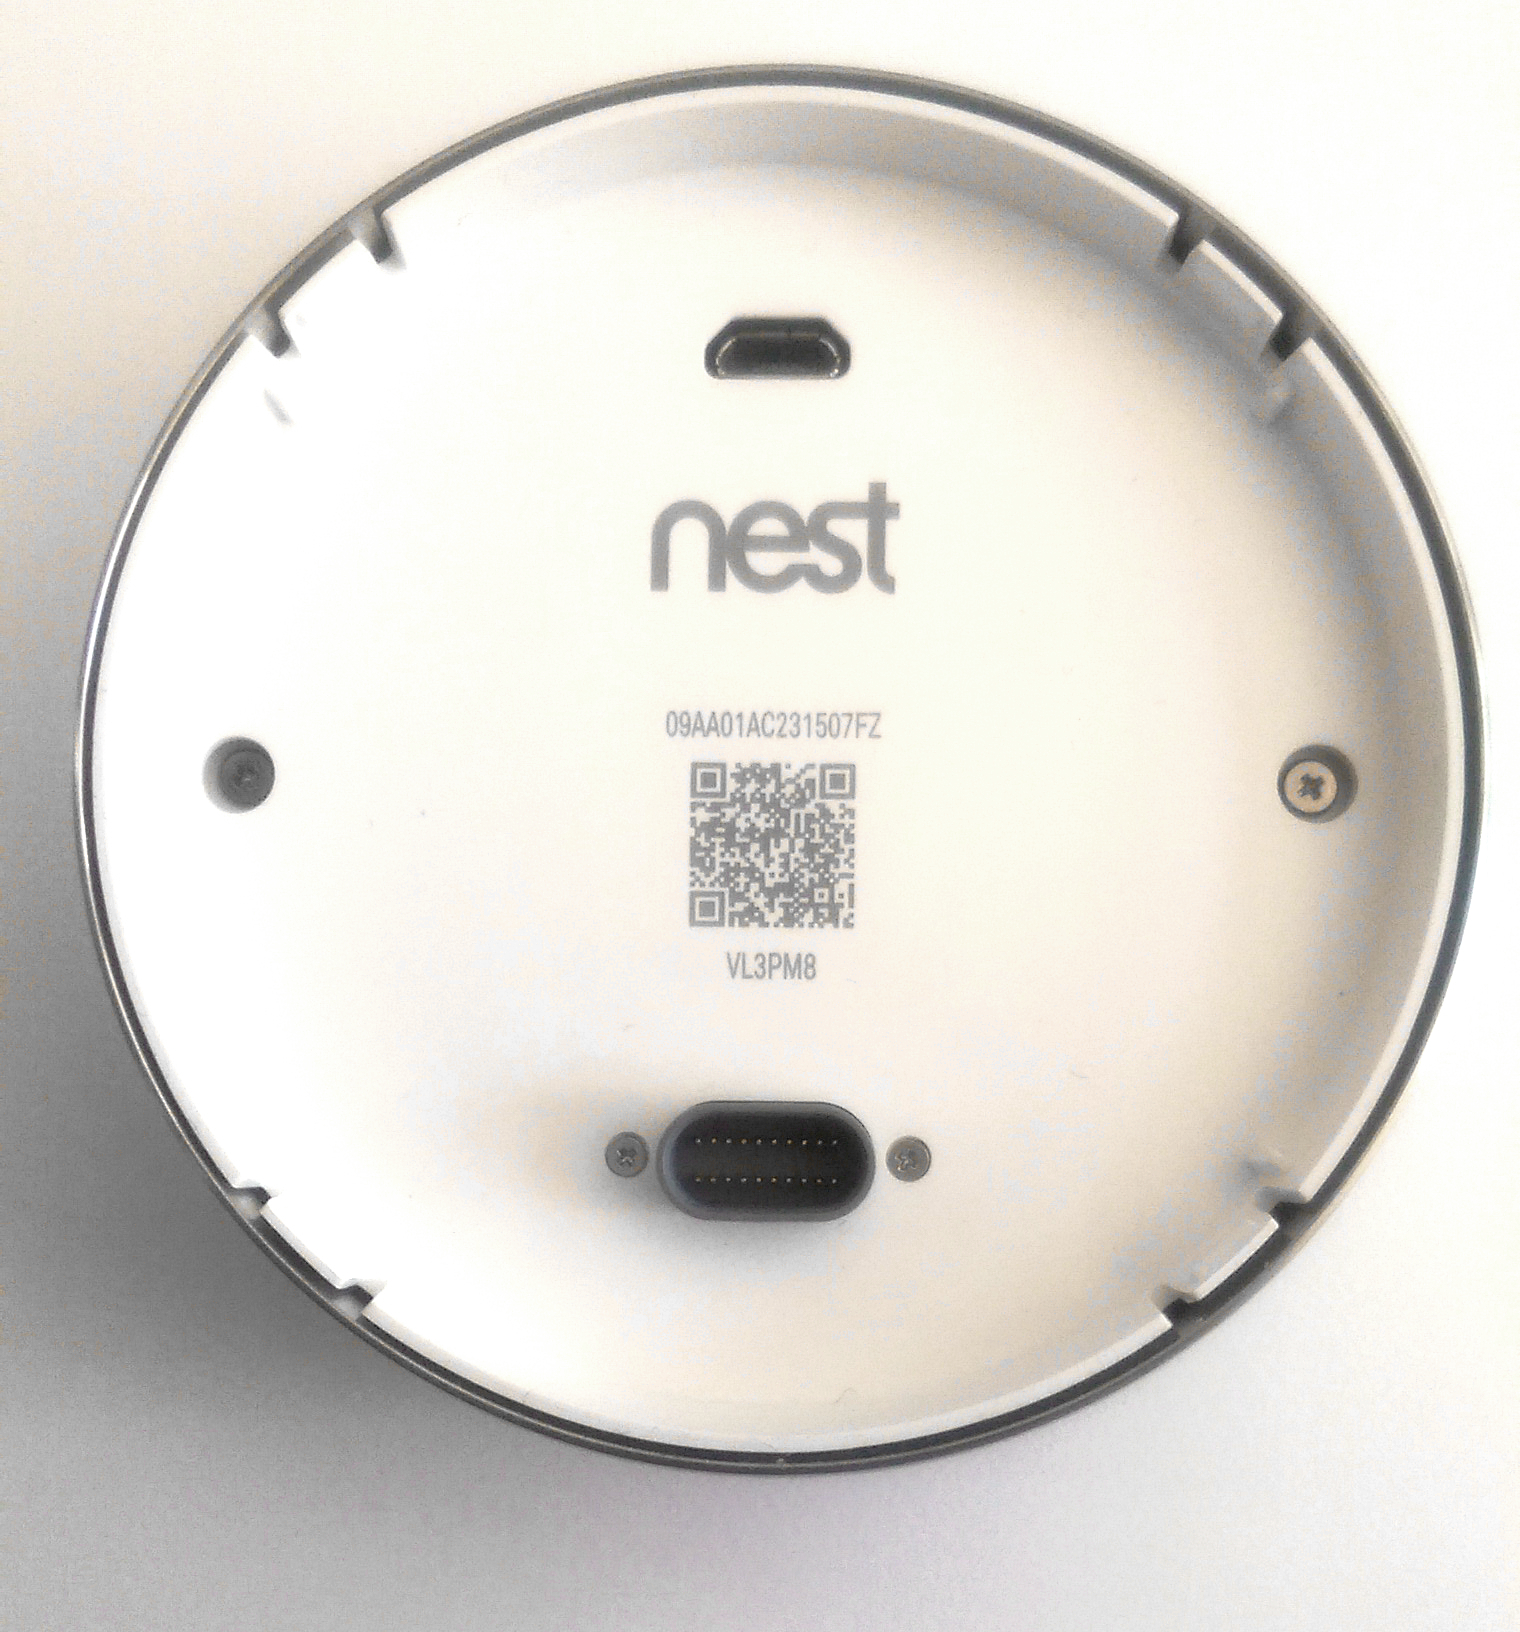 hight resolution of you can also find the serial number by going to settings technical info display on the thermostat